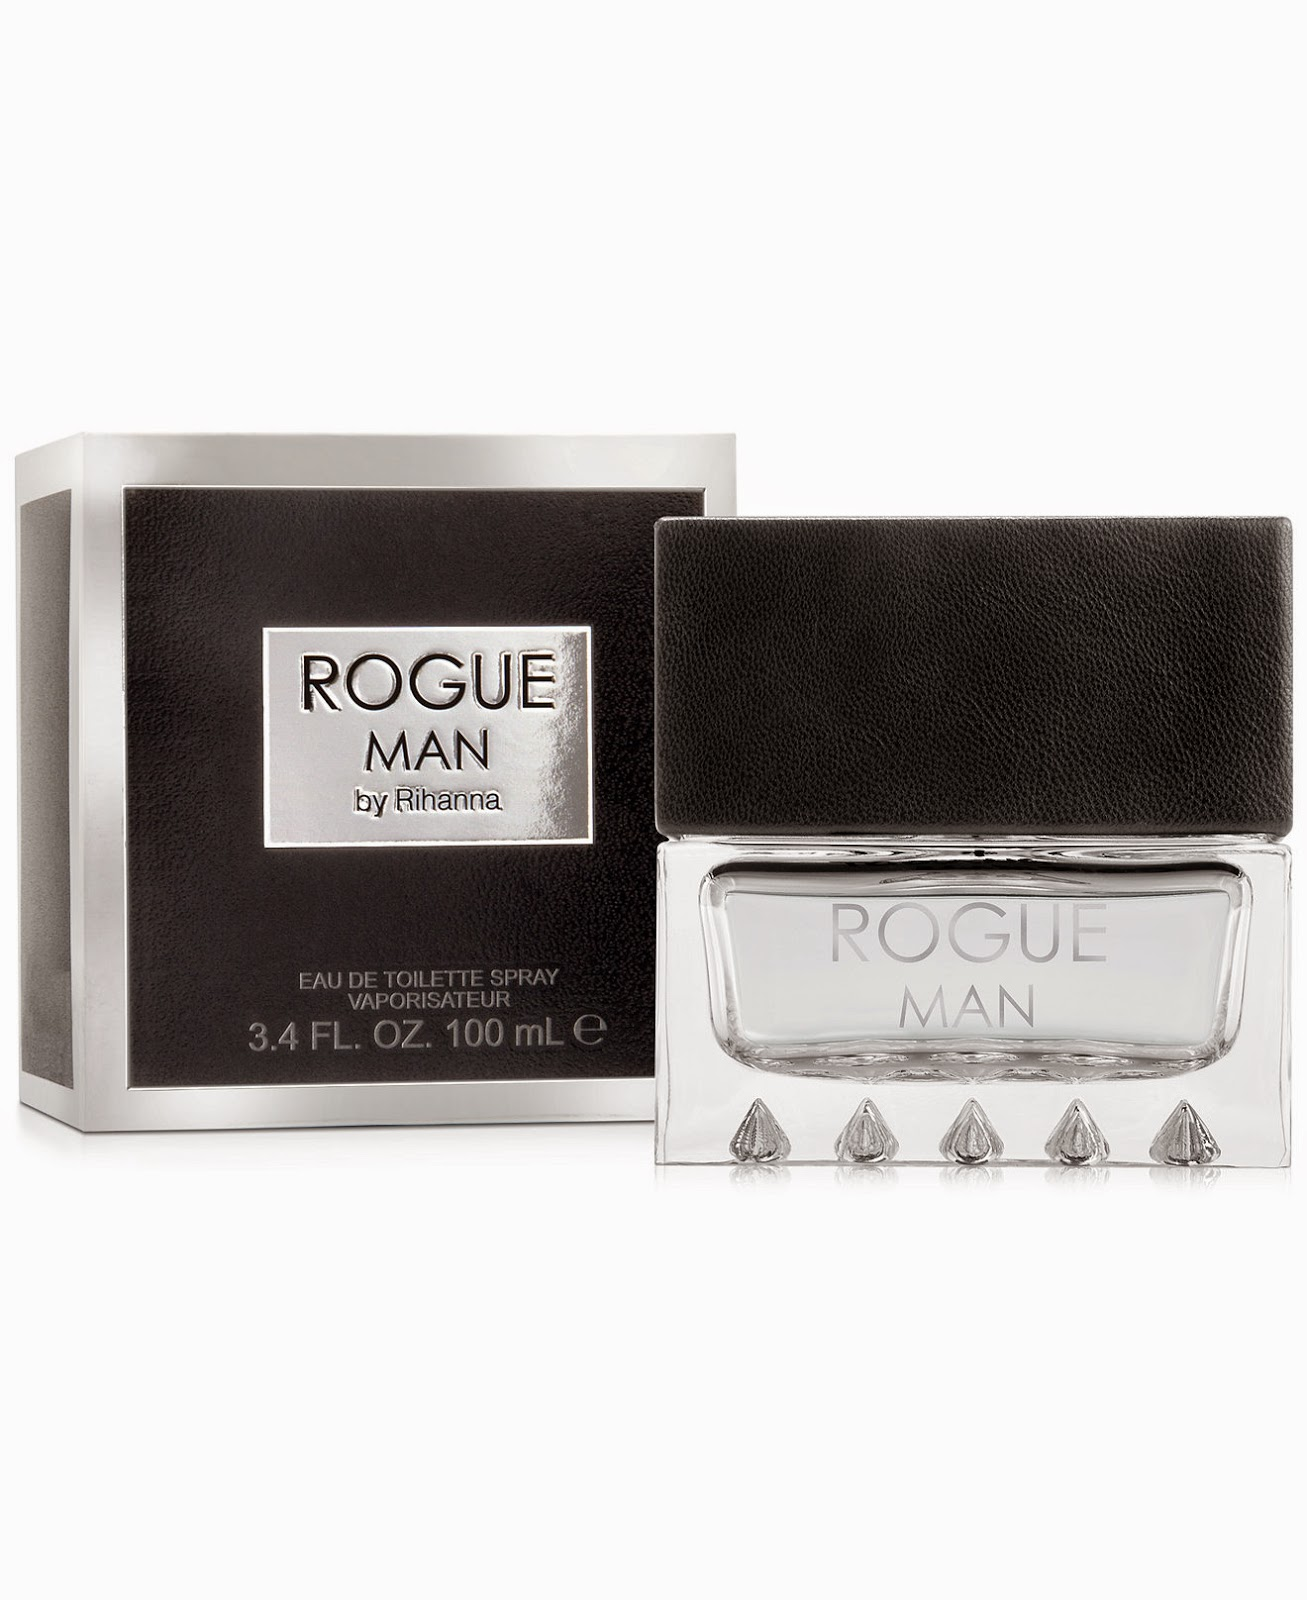 http://www.houseoffraser.co.uk/Rihanna+ROGUE+MAN+Eau+de+Toilette/ROGUE_MAN_Eau_de_Toi,default,pd.html